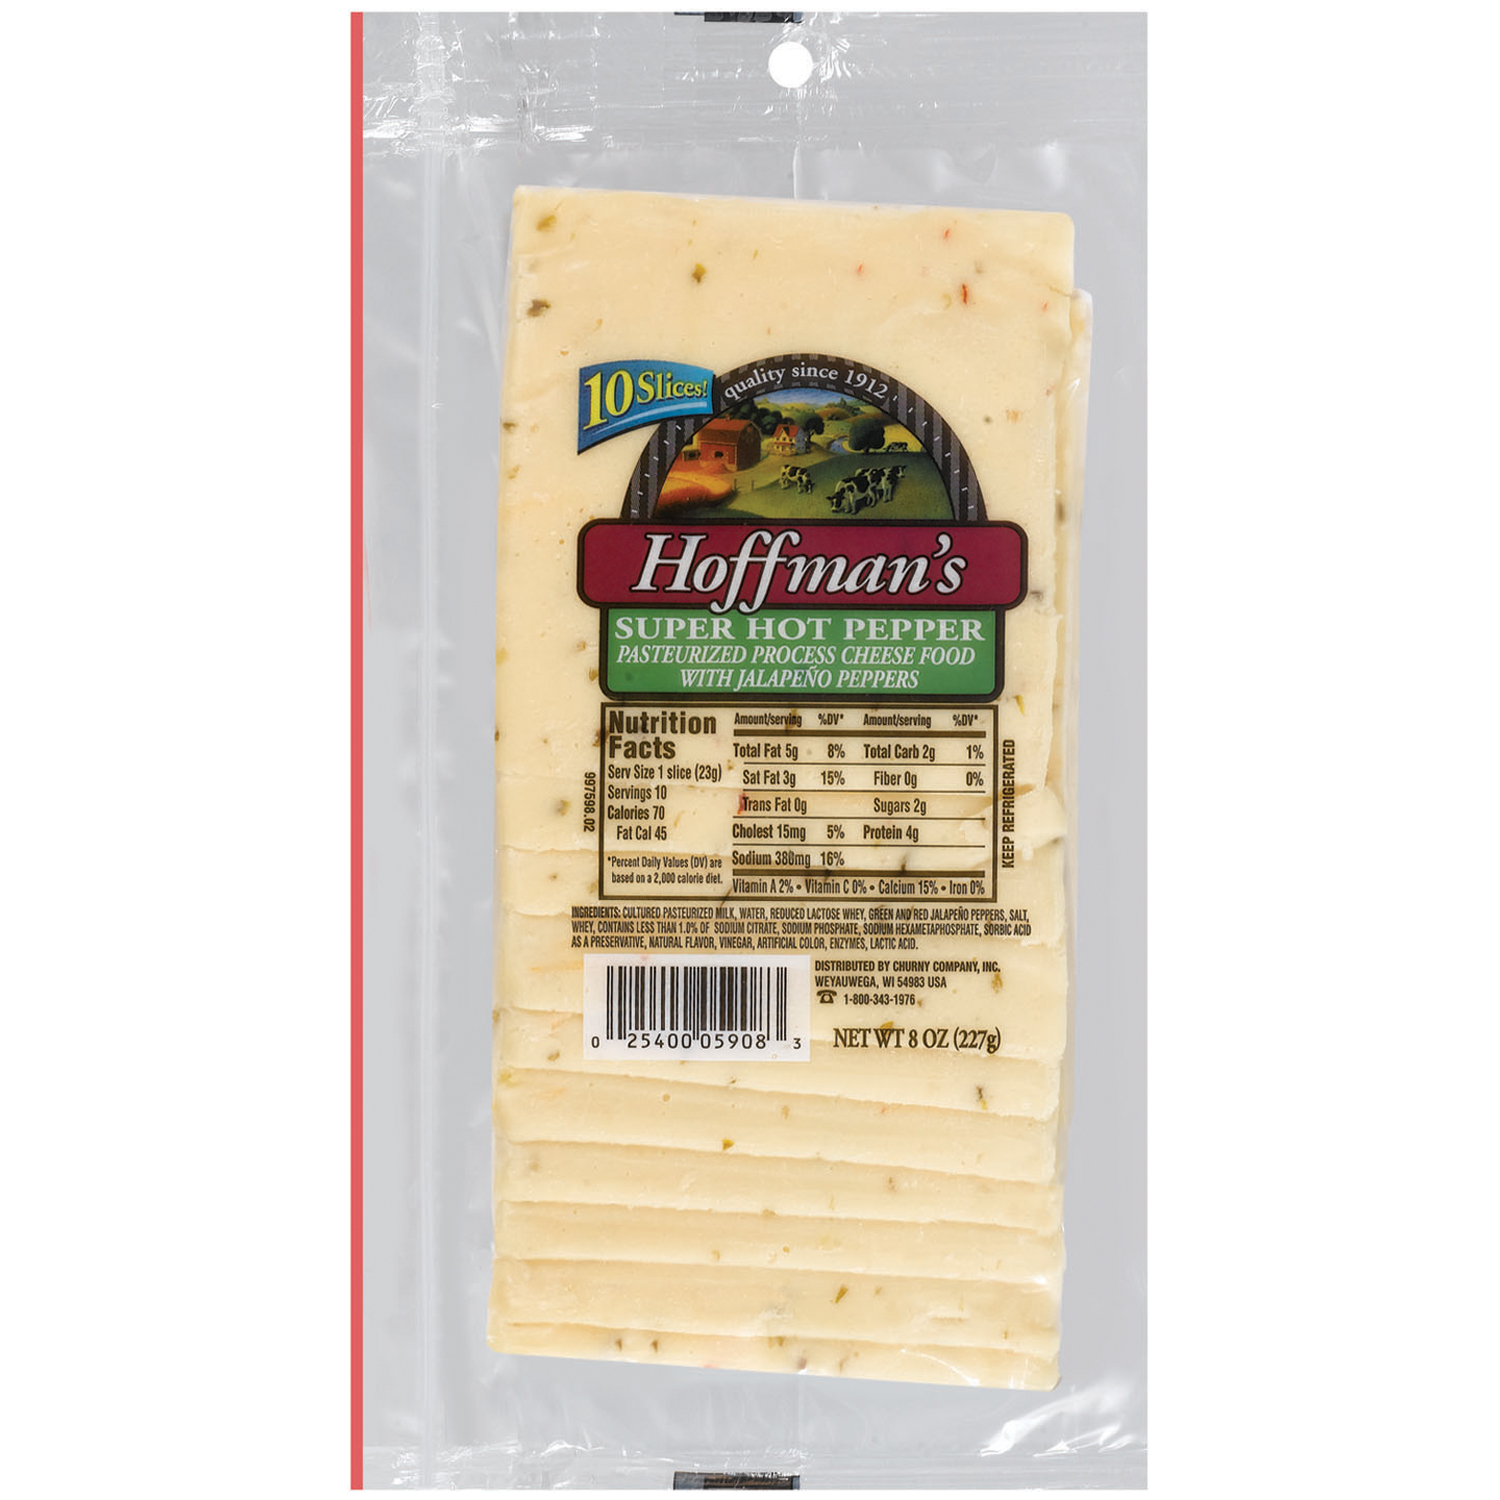 Hoffman's Super Hot Pepper Cheese Slices 10 ct Bag